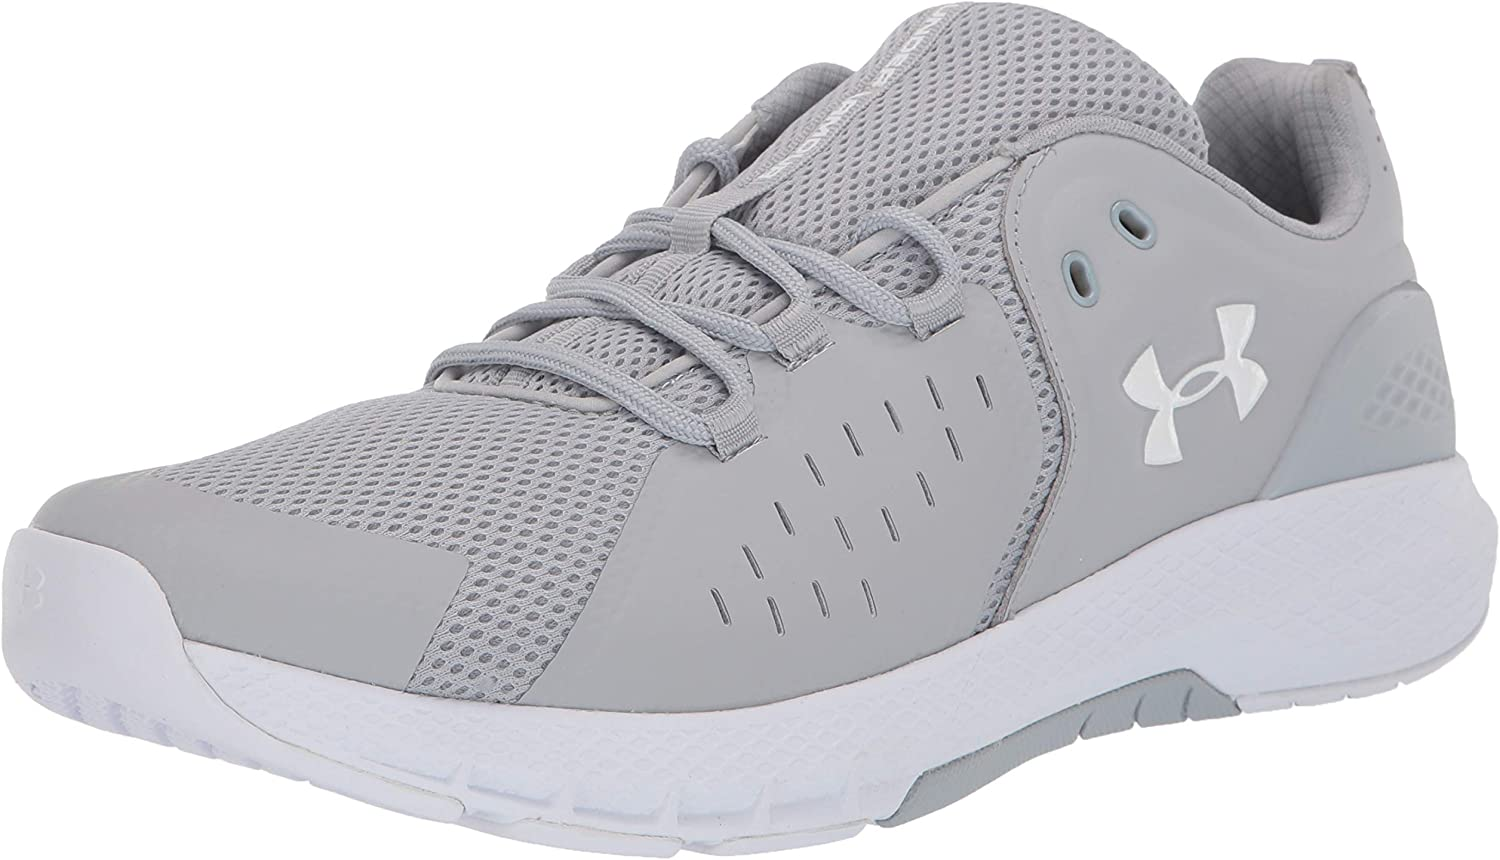 Under Armour Men s Charged Commit 2.0 Cross Trainer